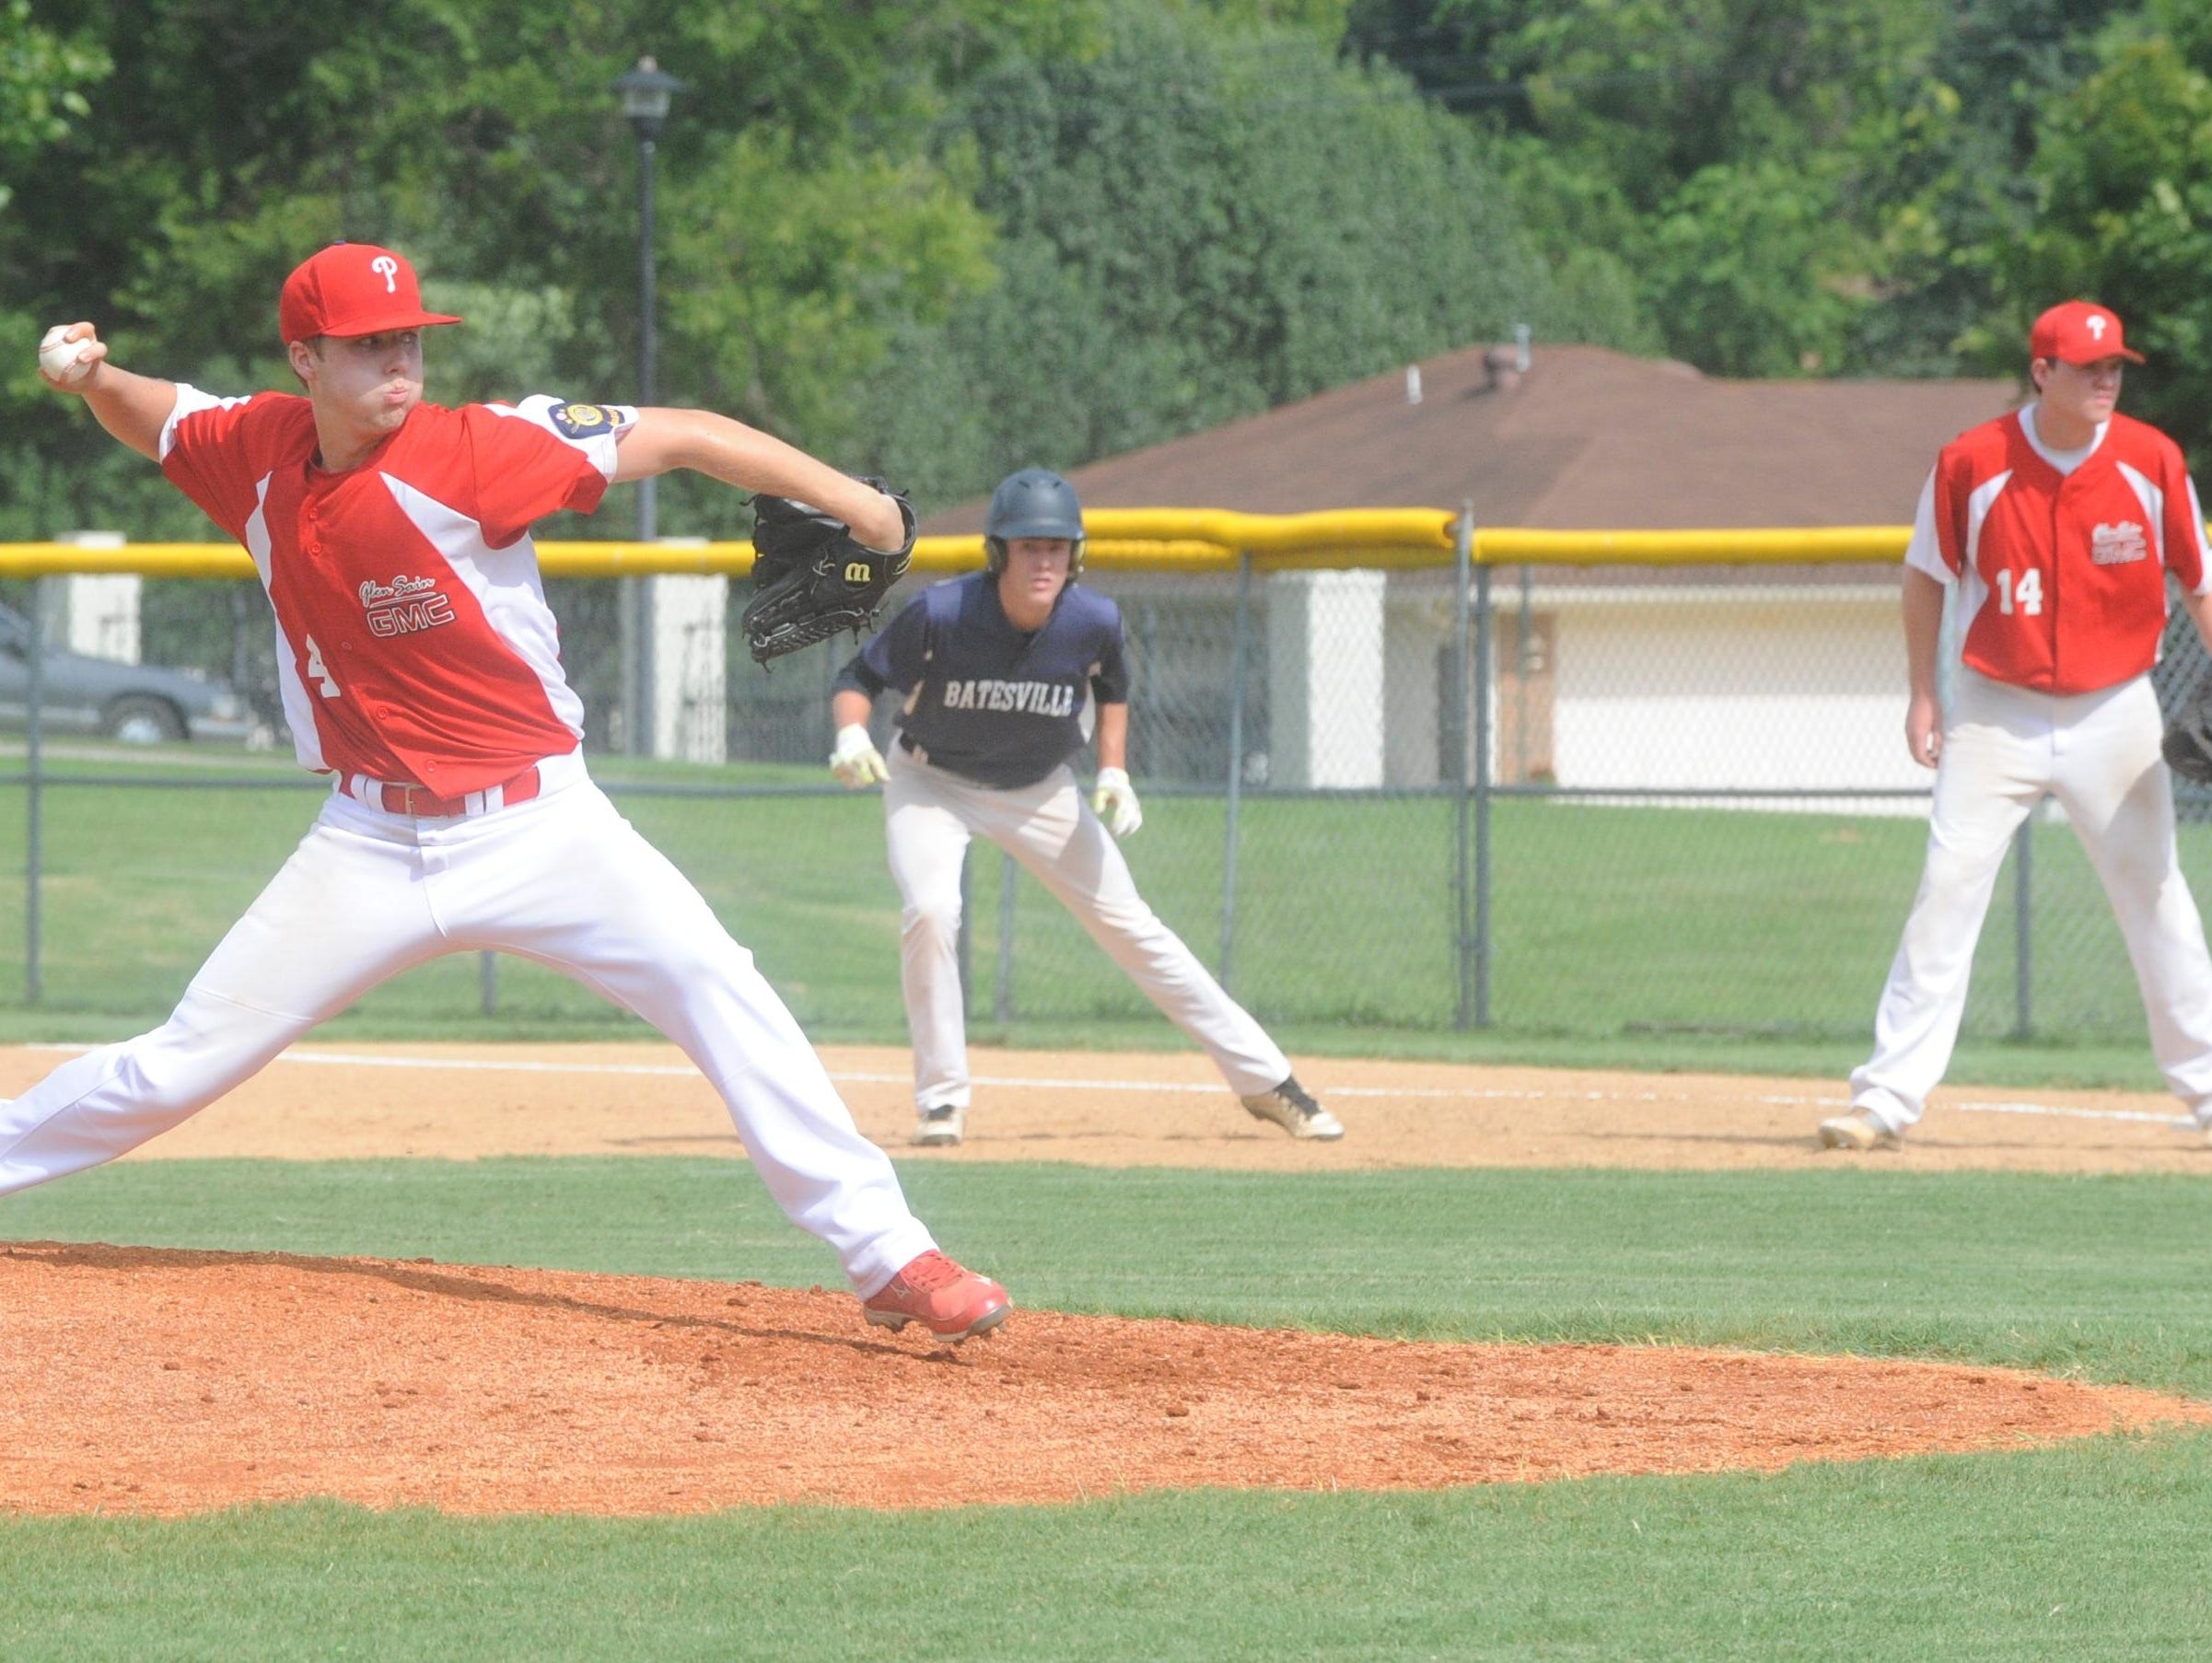 Paragould pitcher Trace Huckabay, left, delivers a pitch while Batesville's Jesse Sampley leads away from first base during Glen Sain GMC's 15-5 victory over the Highwaymen in the first round of the Zone 2 American Legion District Tournament on Friday at Cooper Park.